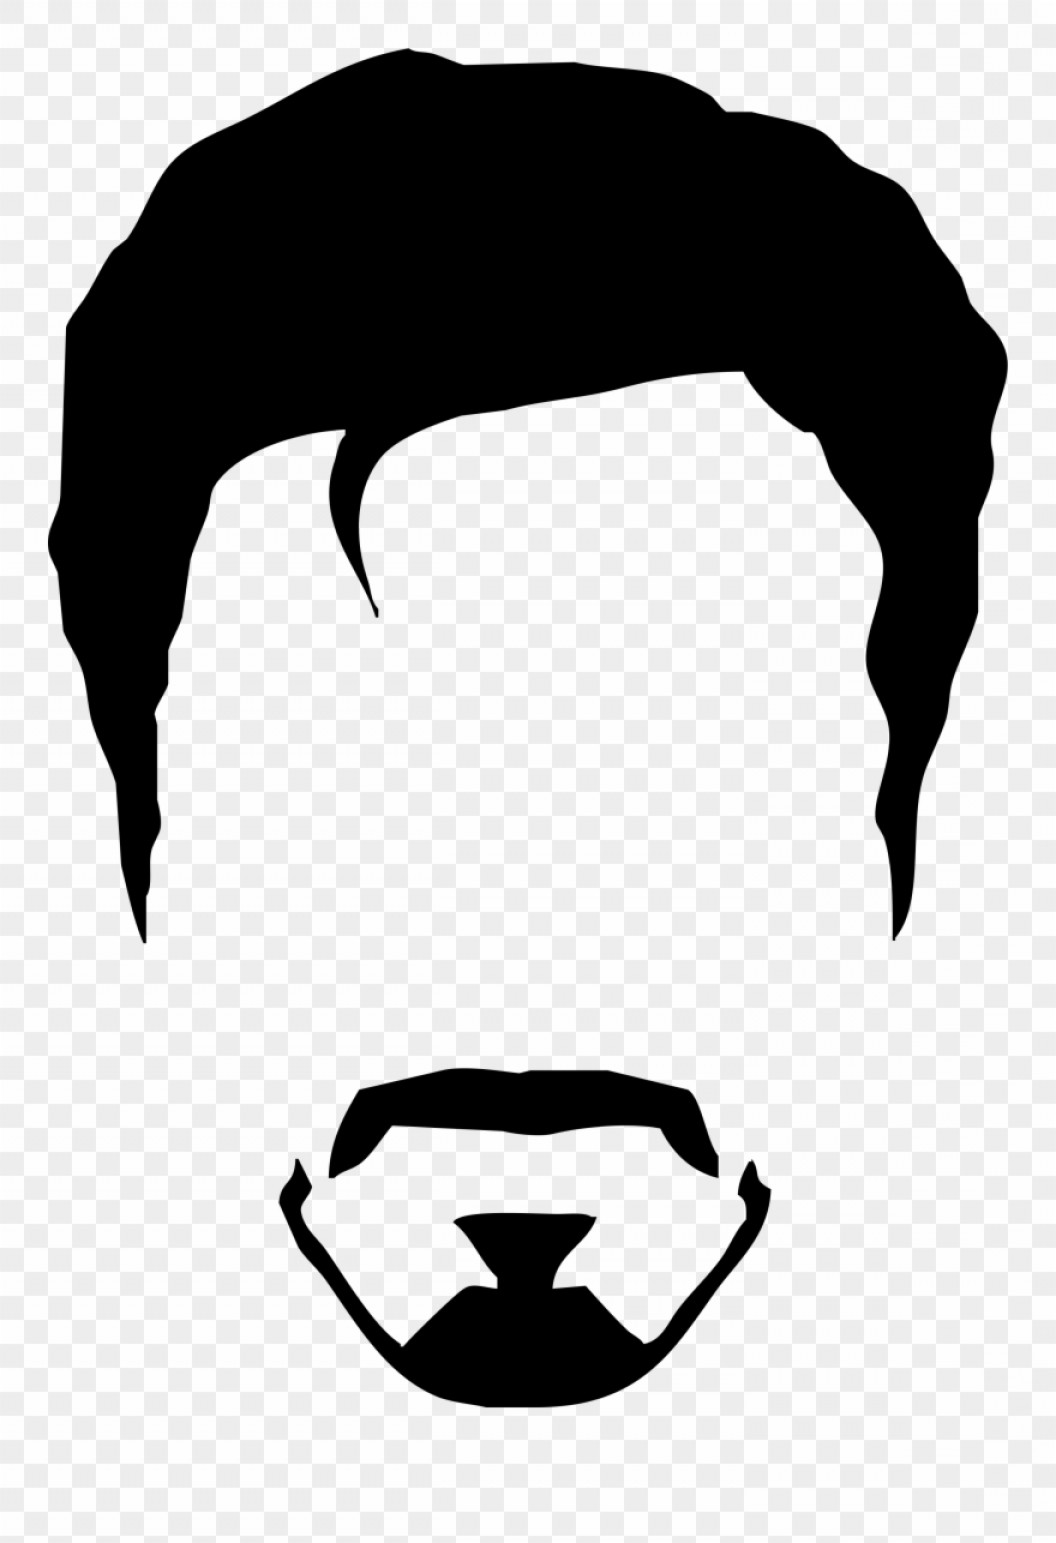 Short Men's Hair Vector: Hwtbtielvis Clipart Minimalist Man Hair Vector Png Transparent